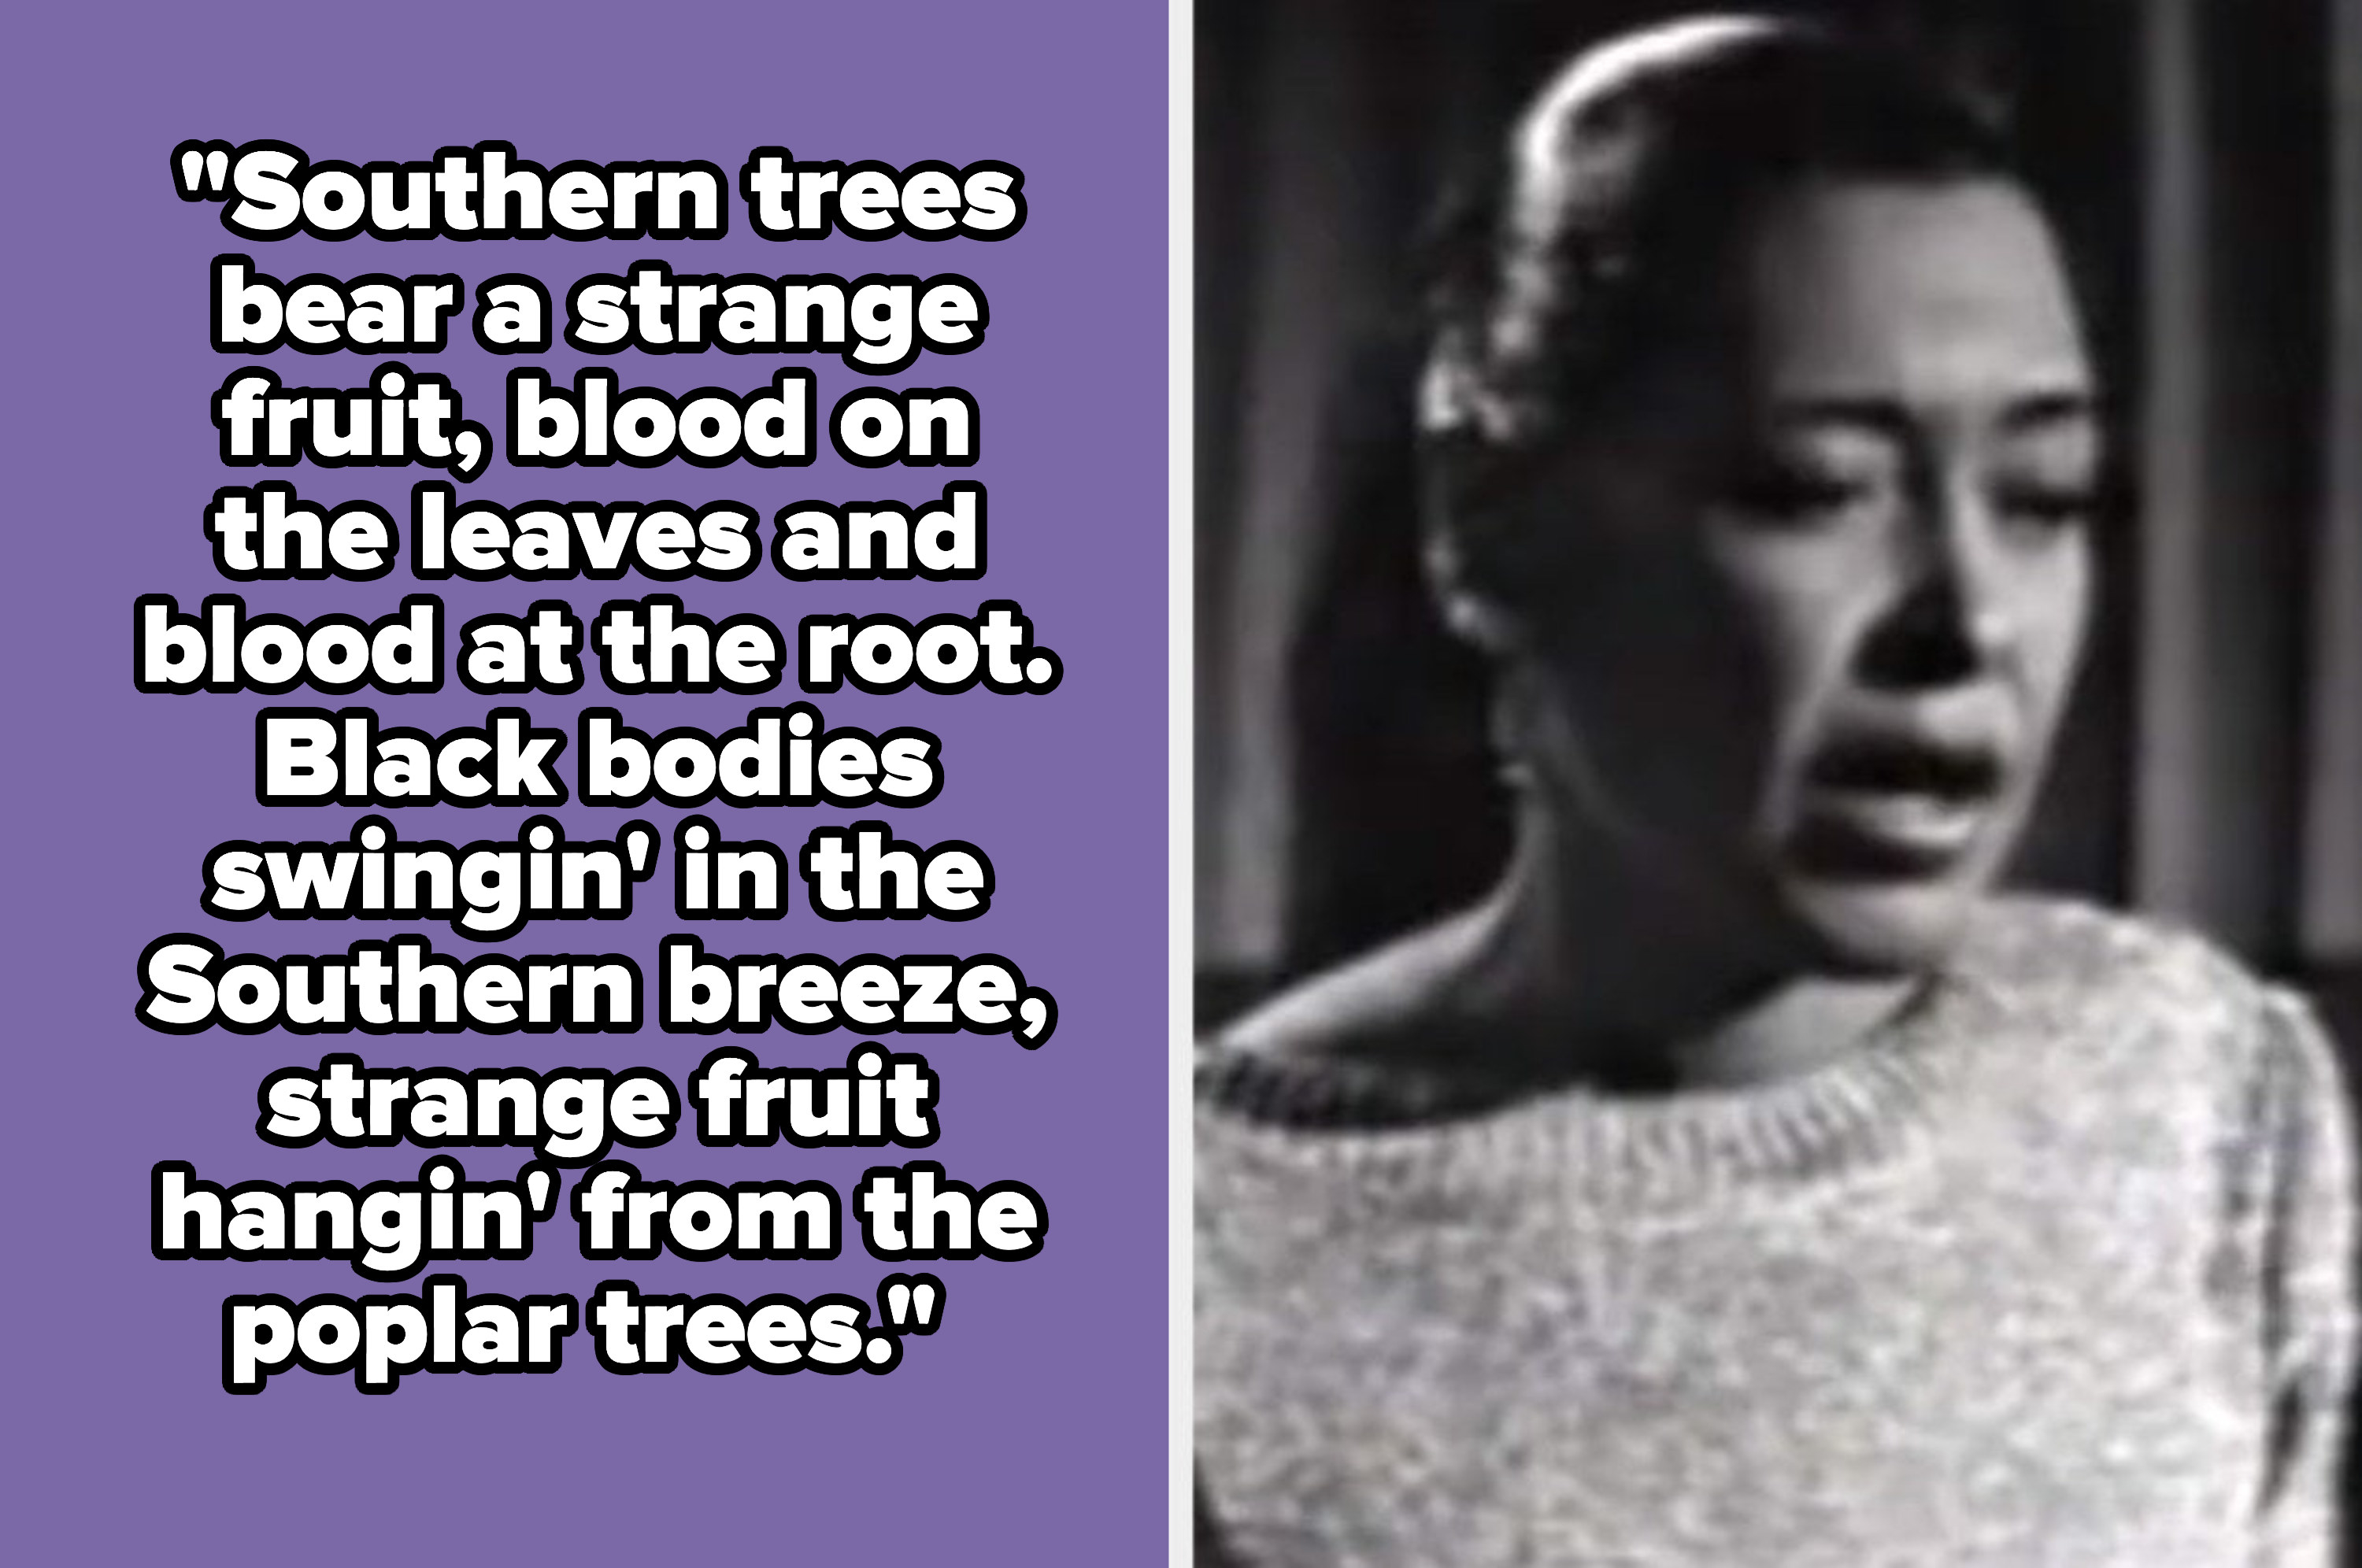 """Billie Holiday lyrics: """"Southern trees bear a strange fruit, blood on the leaves and blood at the root. Black bodies swingin' in the Southern breeze, strange fruit hangin' from the poplar trees."""""""